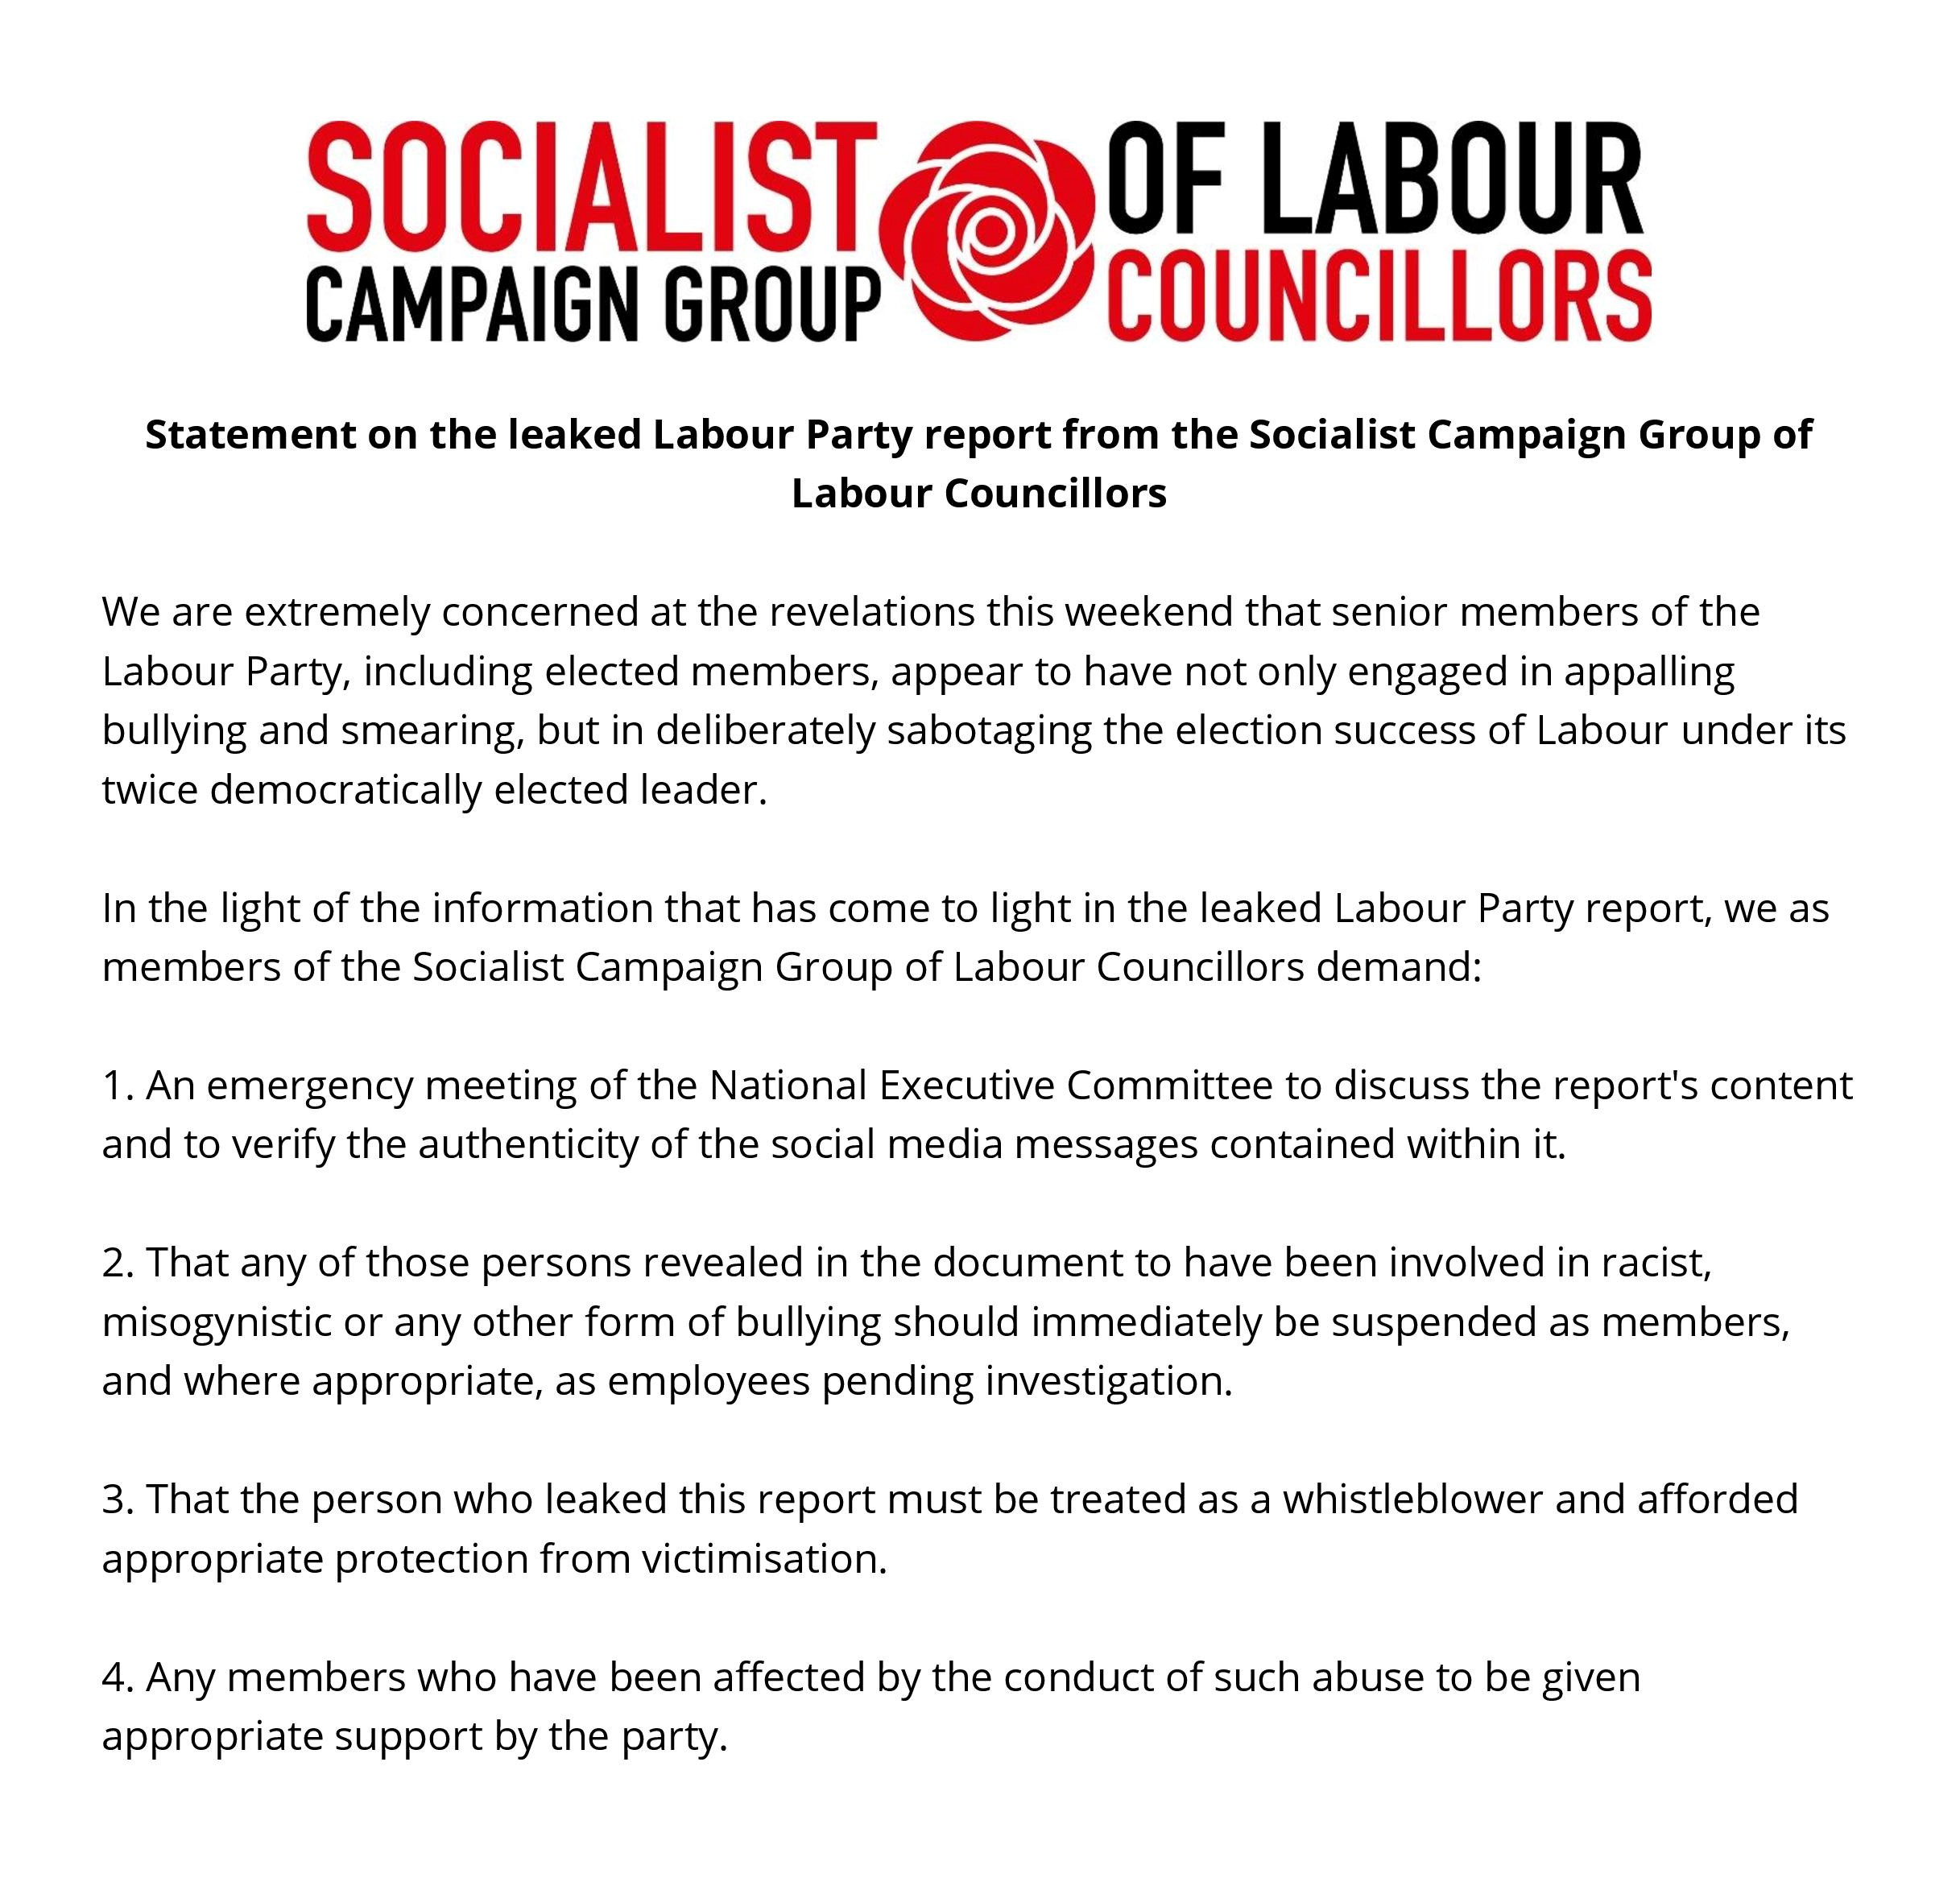 20200414 Statement on the leaked Labour Party report (Socialist Councillors)-page-001